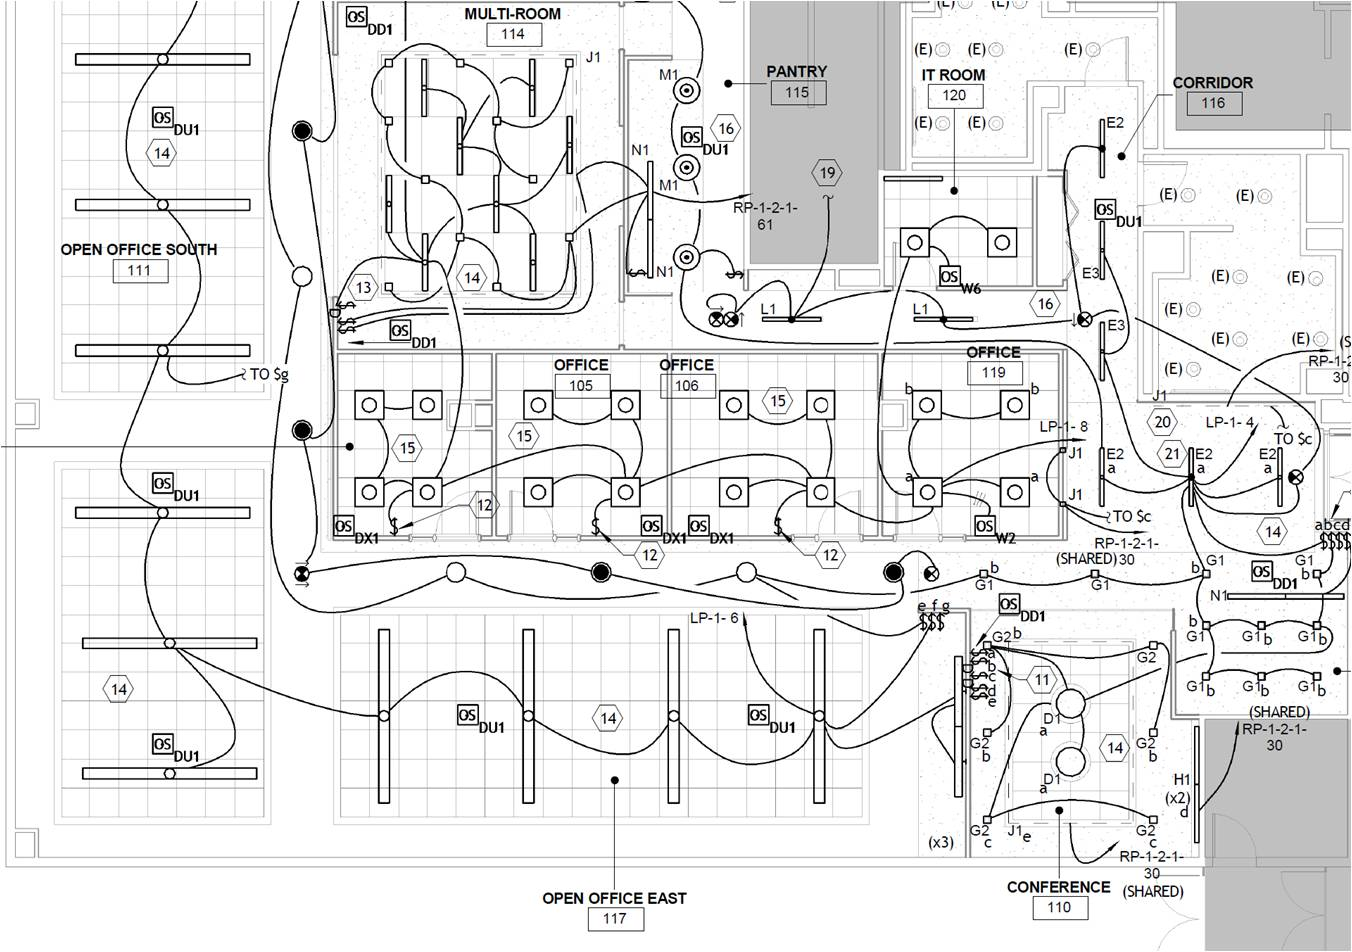 How To Read Mep Drawings